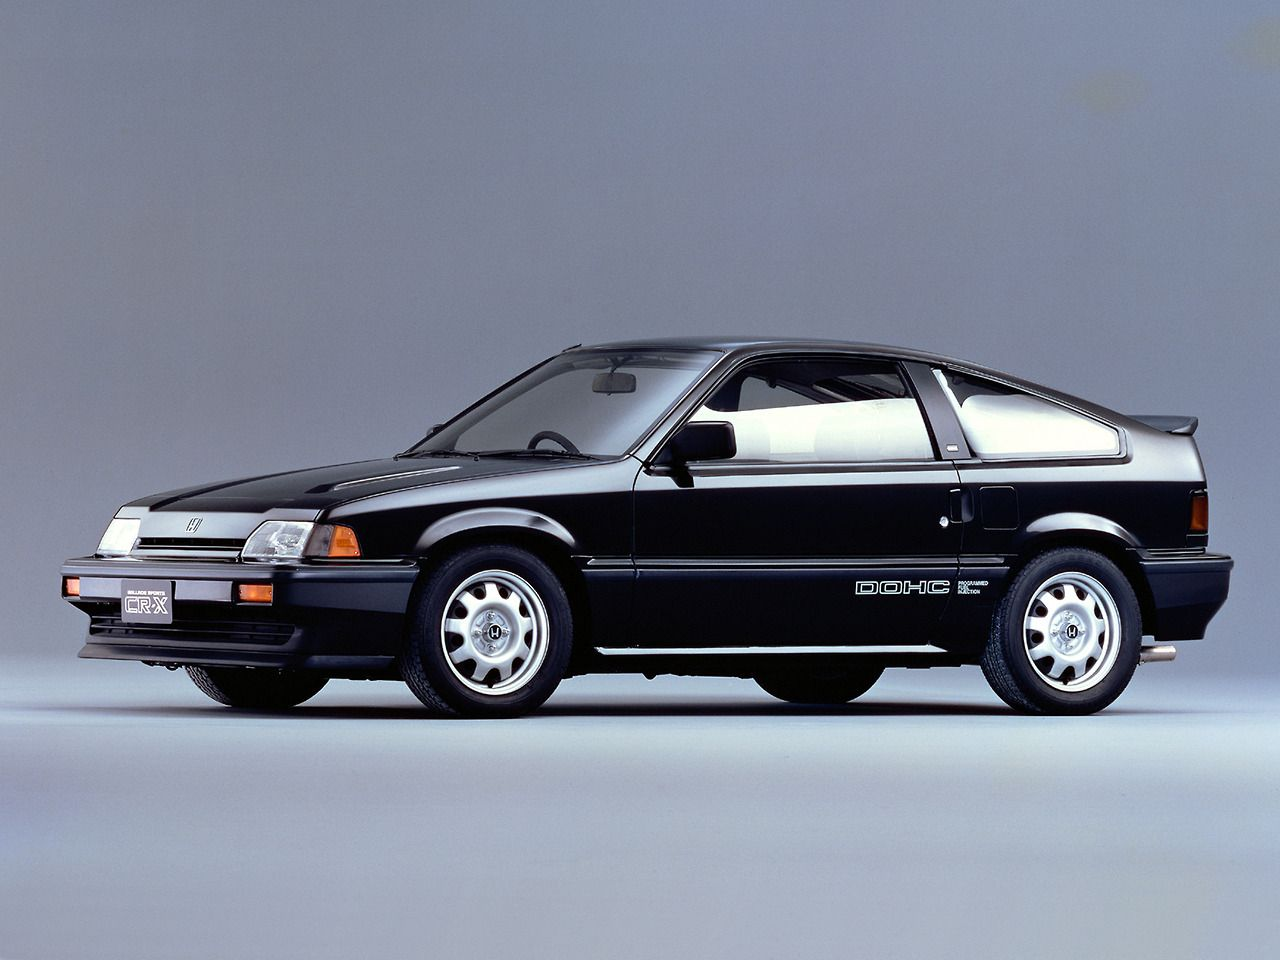 honda crx with dohc engine this engine only made it to. Black Bedroom Furniture Sets. Home Design Ideas